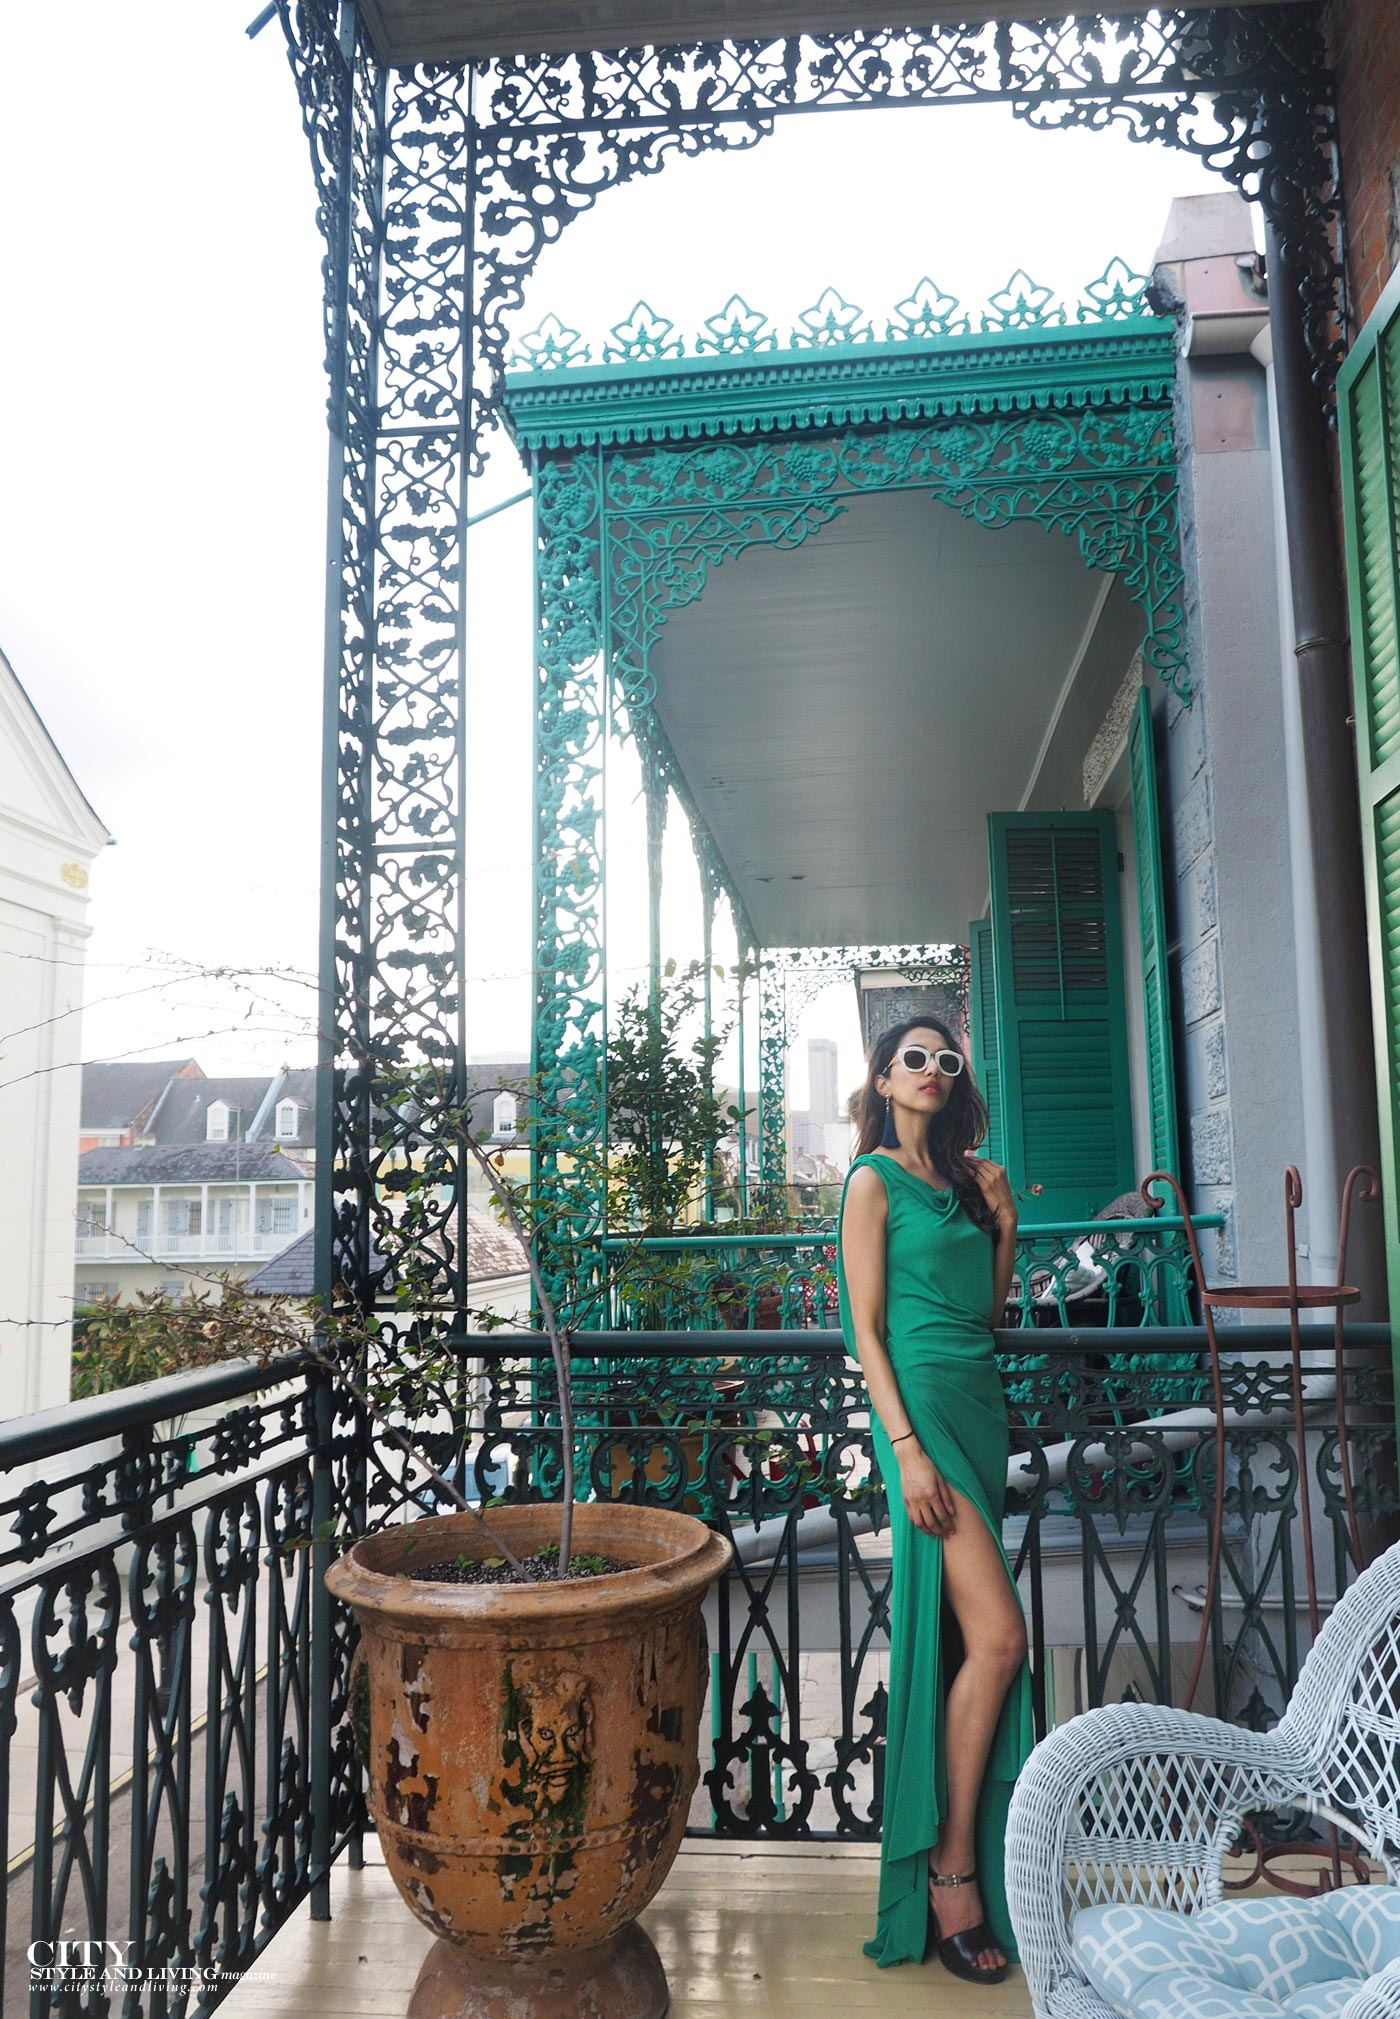 City style and living magazine The Editors Notebook style fashion blogger Shivana Maharaj French Quarter New Orleans Soniat House Balcony wearing BCBG Max Azria green maxi dress wrought iron architecture